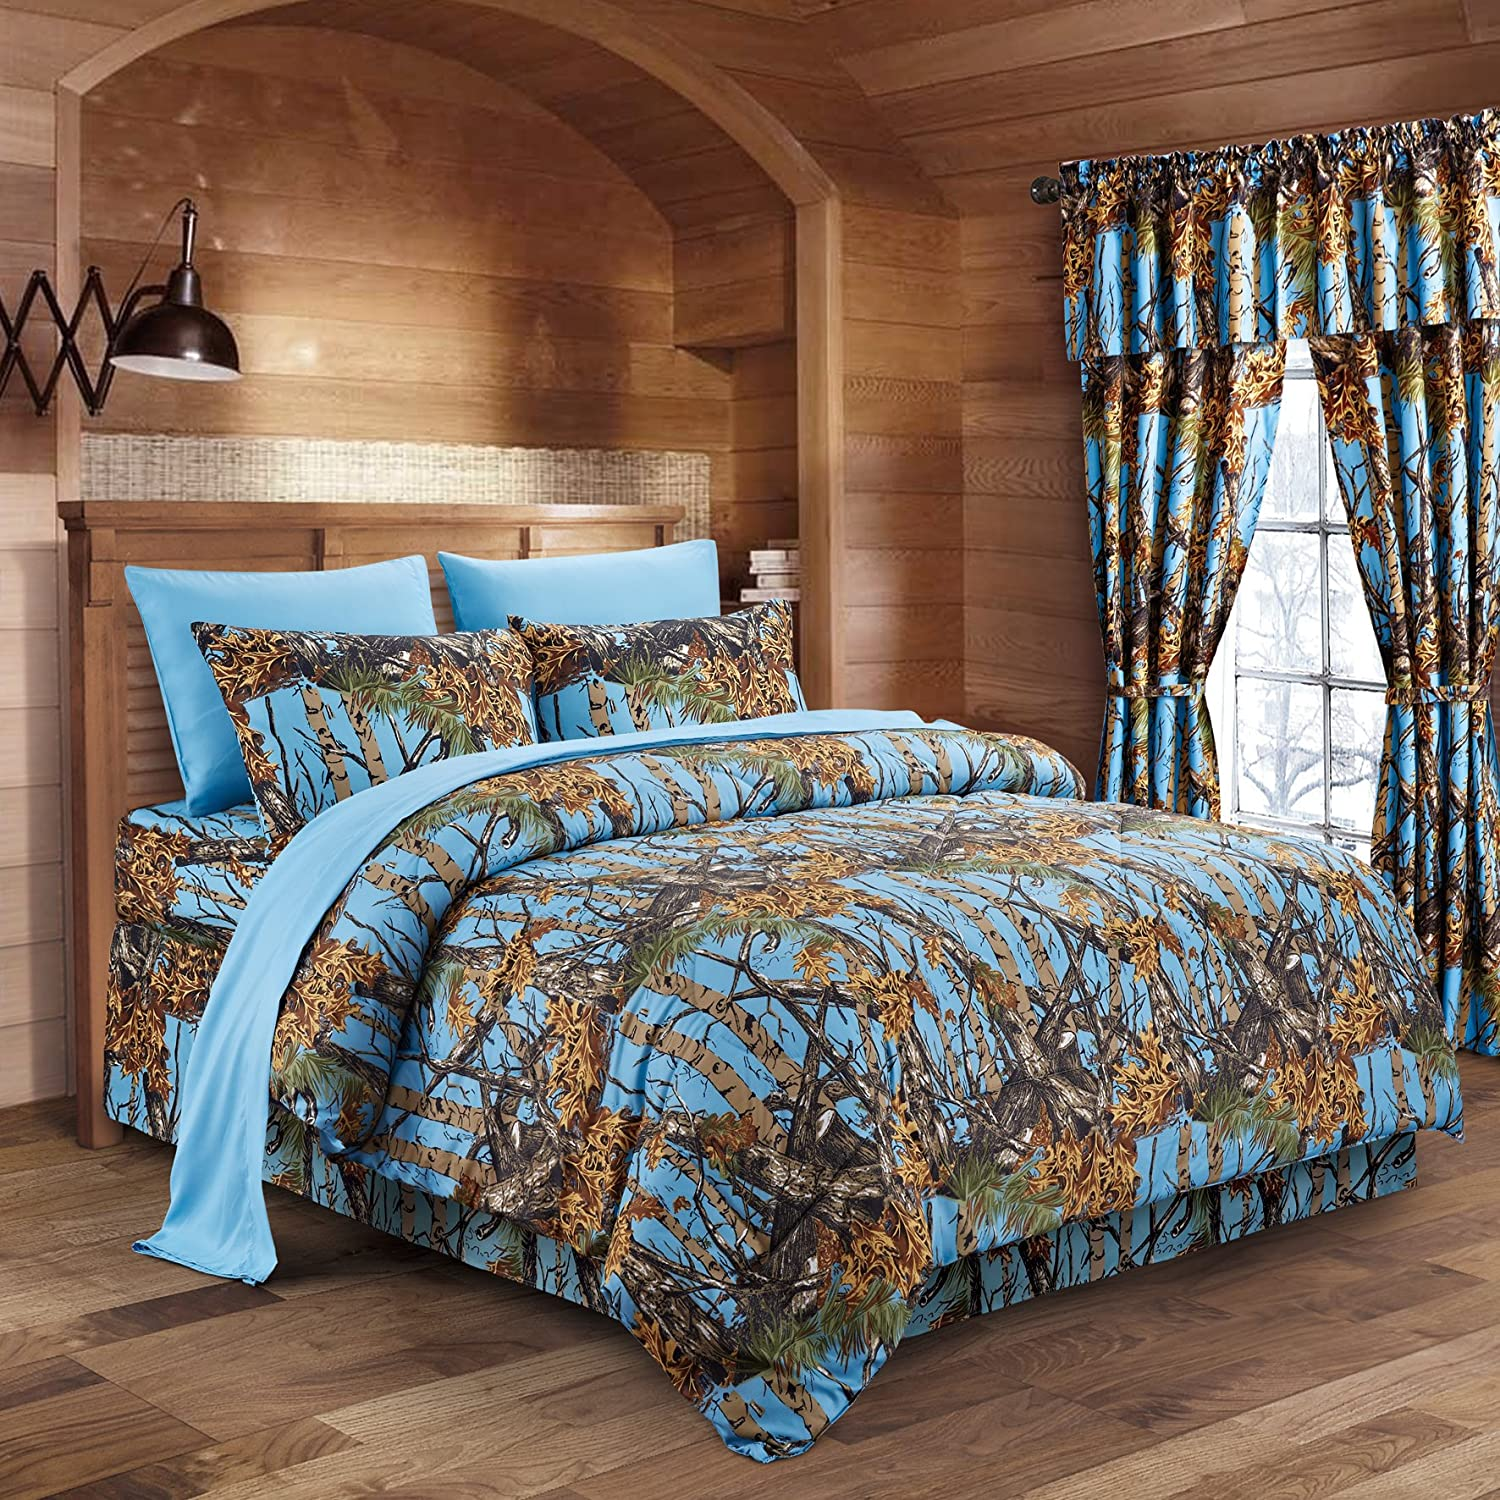 The Woods Powder Blue Camouflage Twin 5pc Premium Luxury Comforter